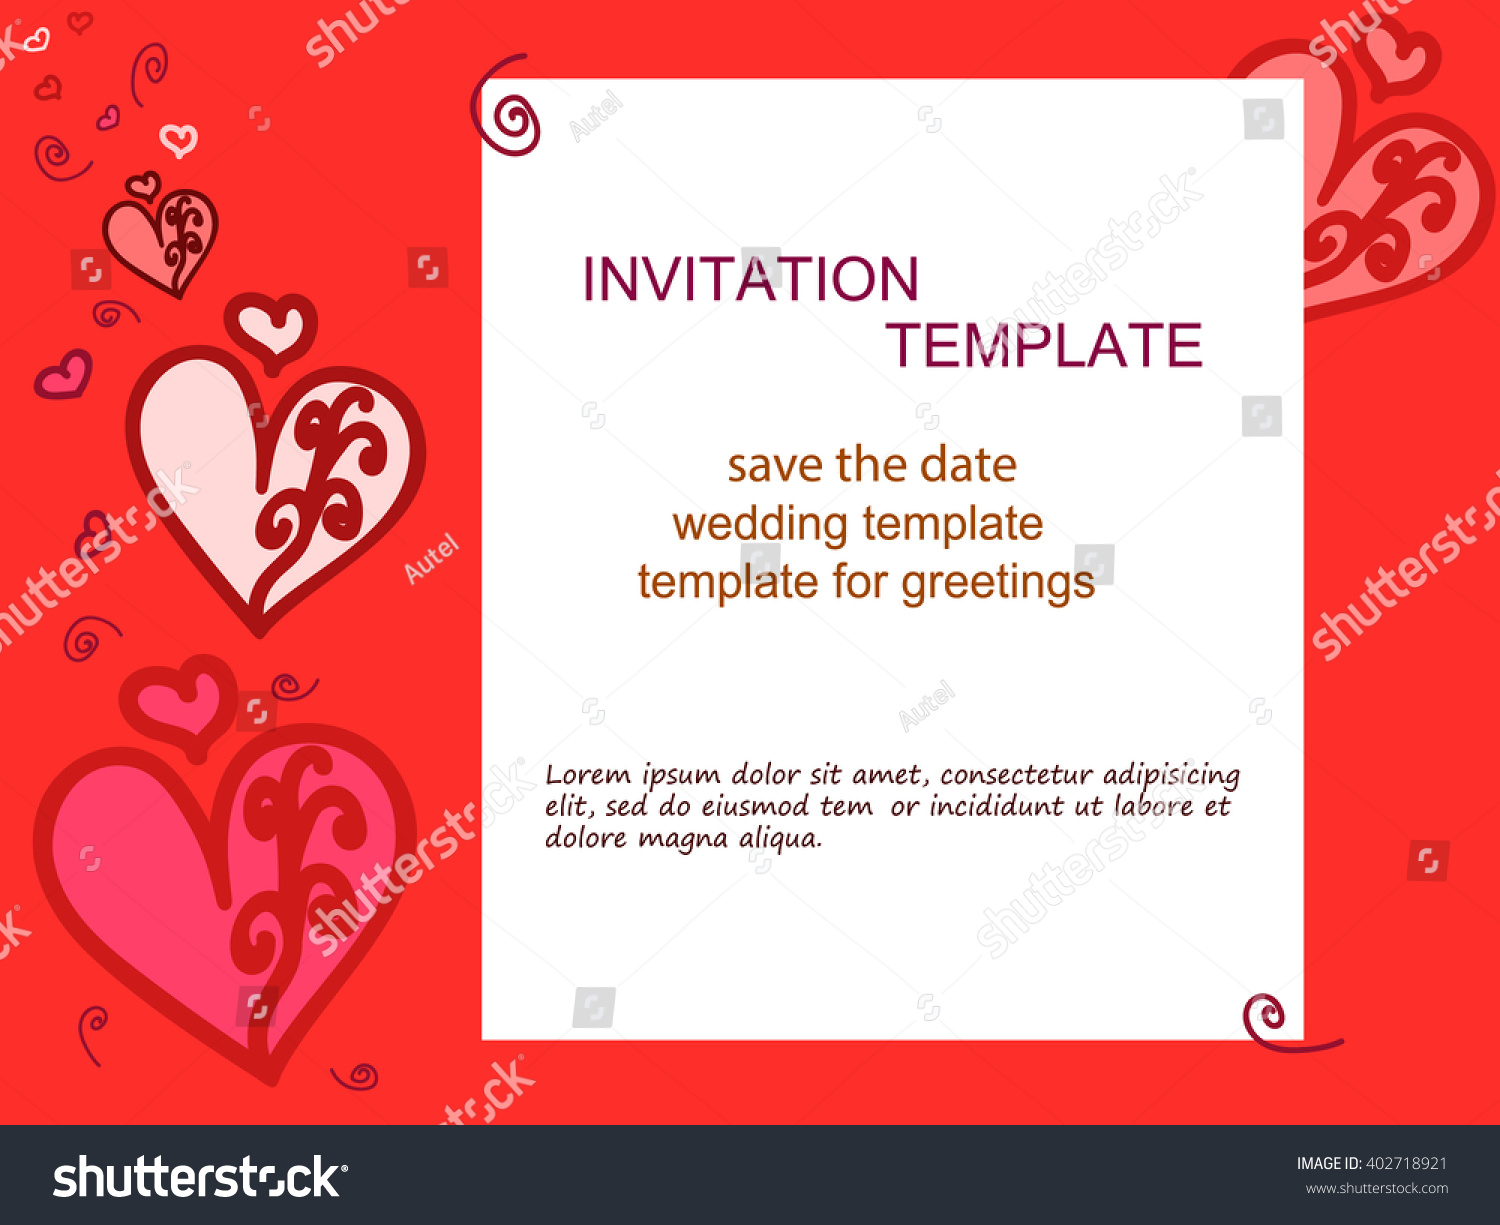 Invitation Heart Red Background Wedding Invitations Stock Vector ...